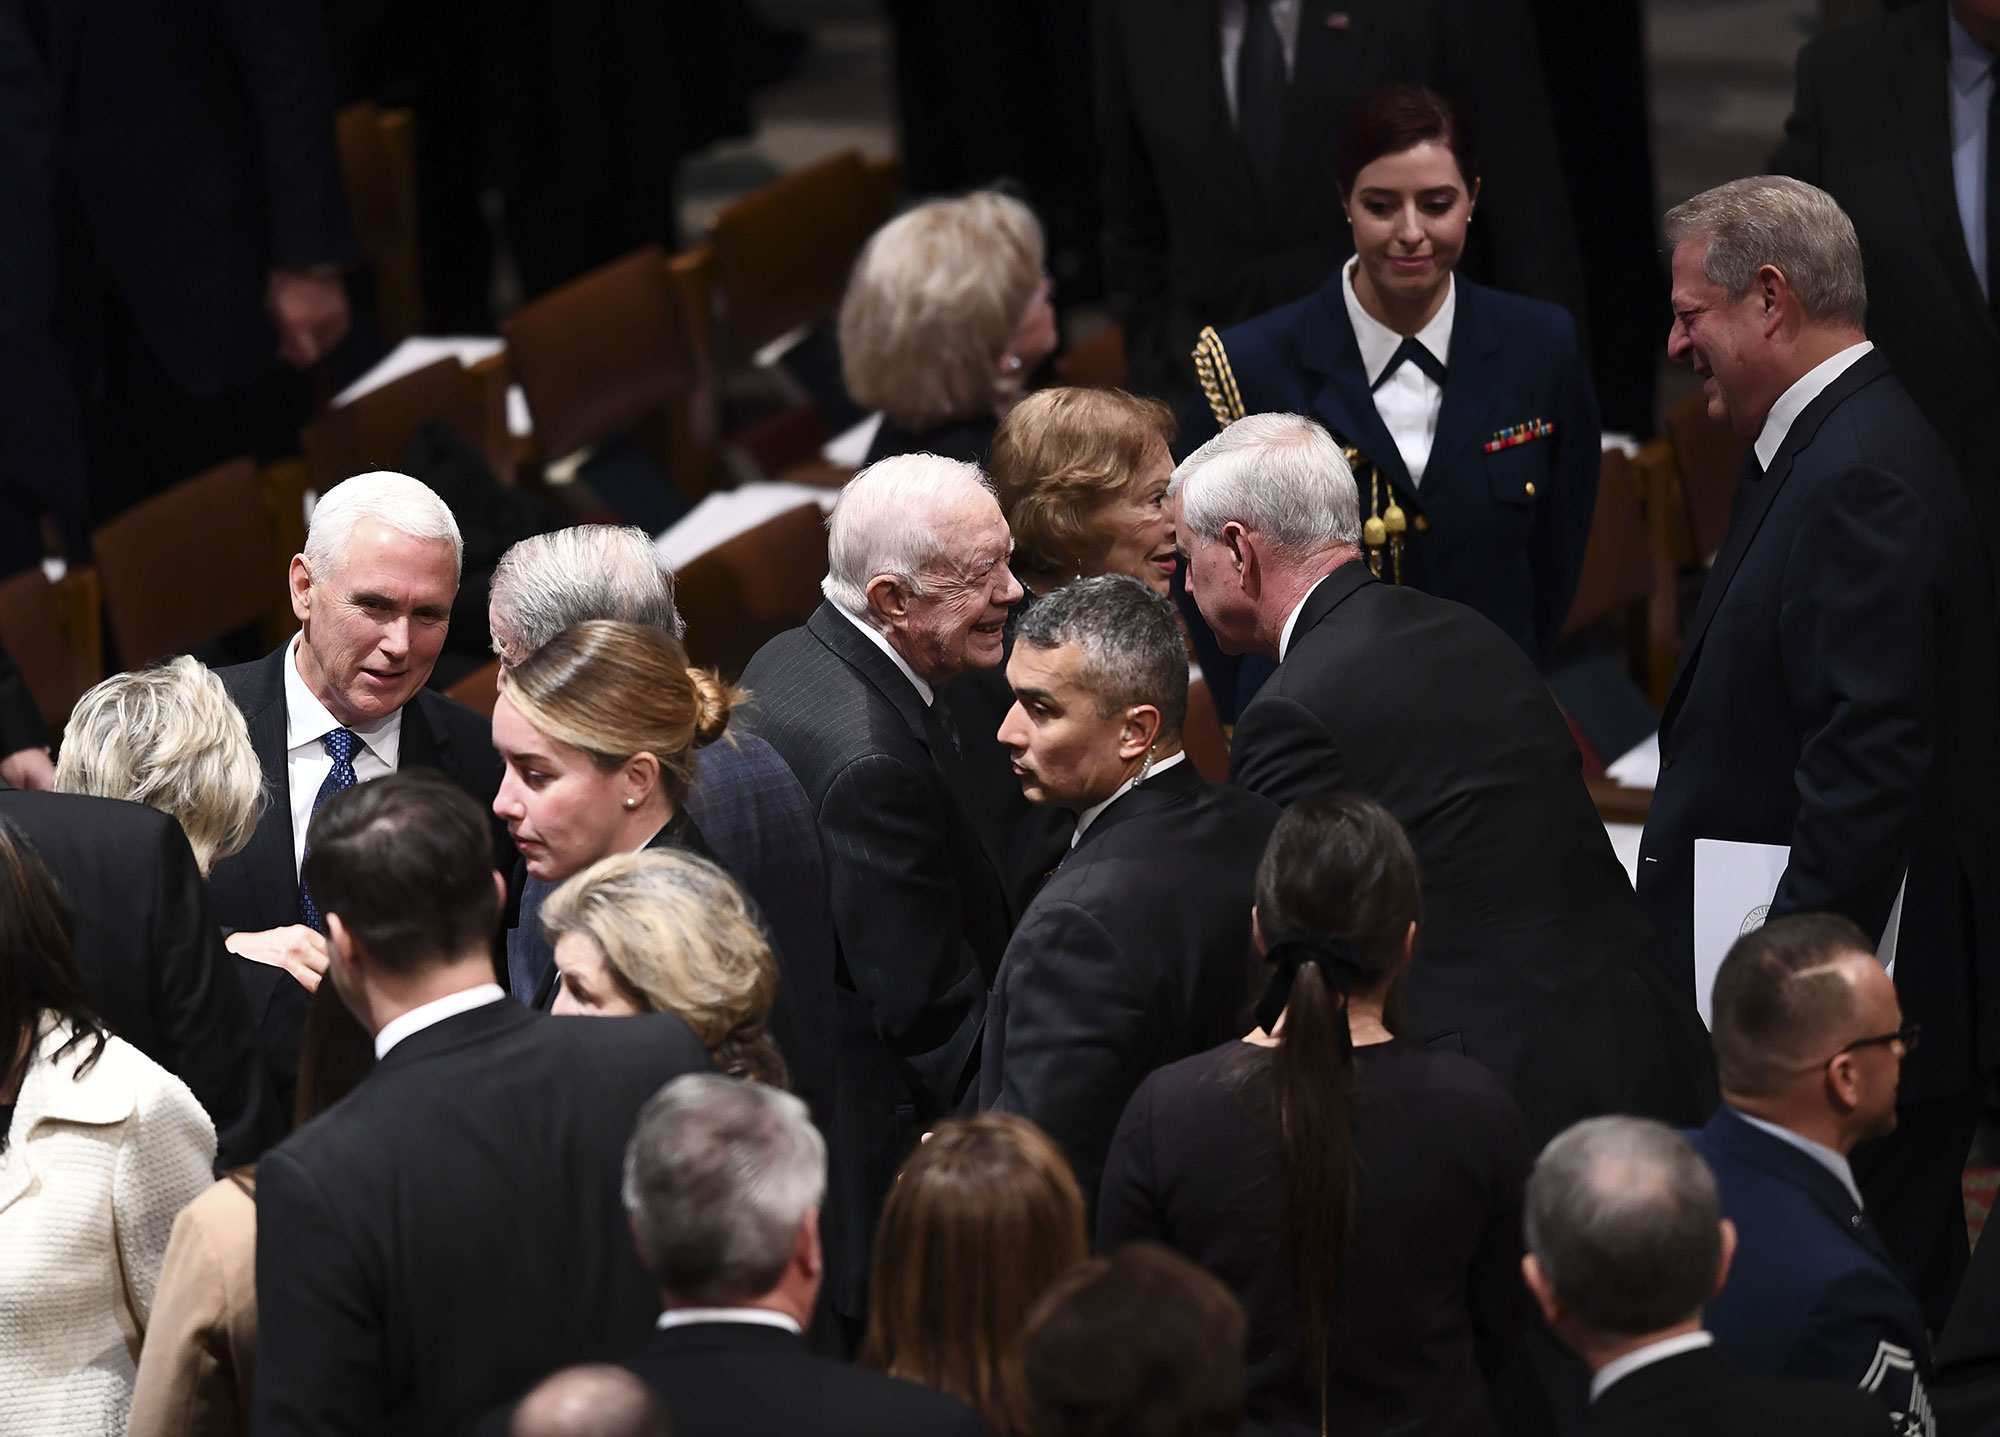 "<div class=""meta image-caption""><div class=""origin-logo origin-image none""><span>none</span></div><span class=""caption-text"">Former US Vice President Al Gore(R) Vice President Mike Pence (L) and former US President Jimmy Carter(C) arrive for the funeral service for former US President George H. W. Bush. (BRENDAN SMIALOWSKI/AFP/Getty Images)</span></div>"